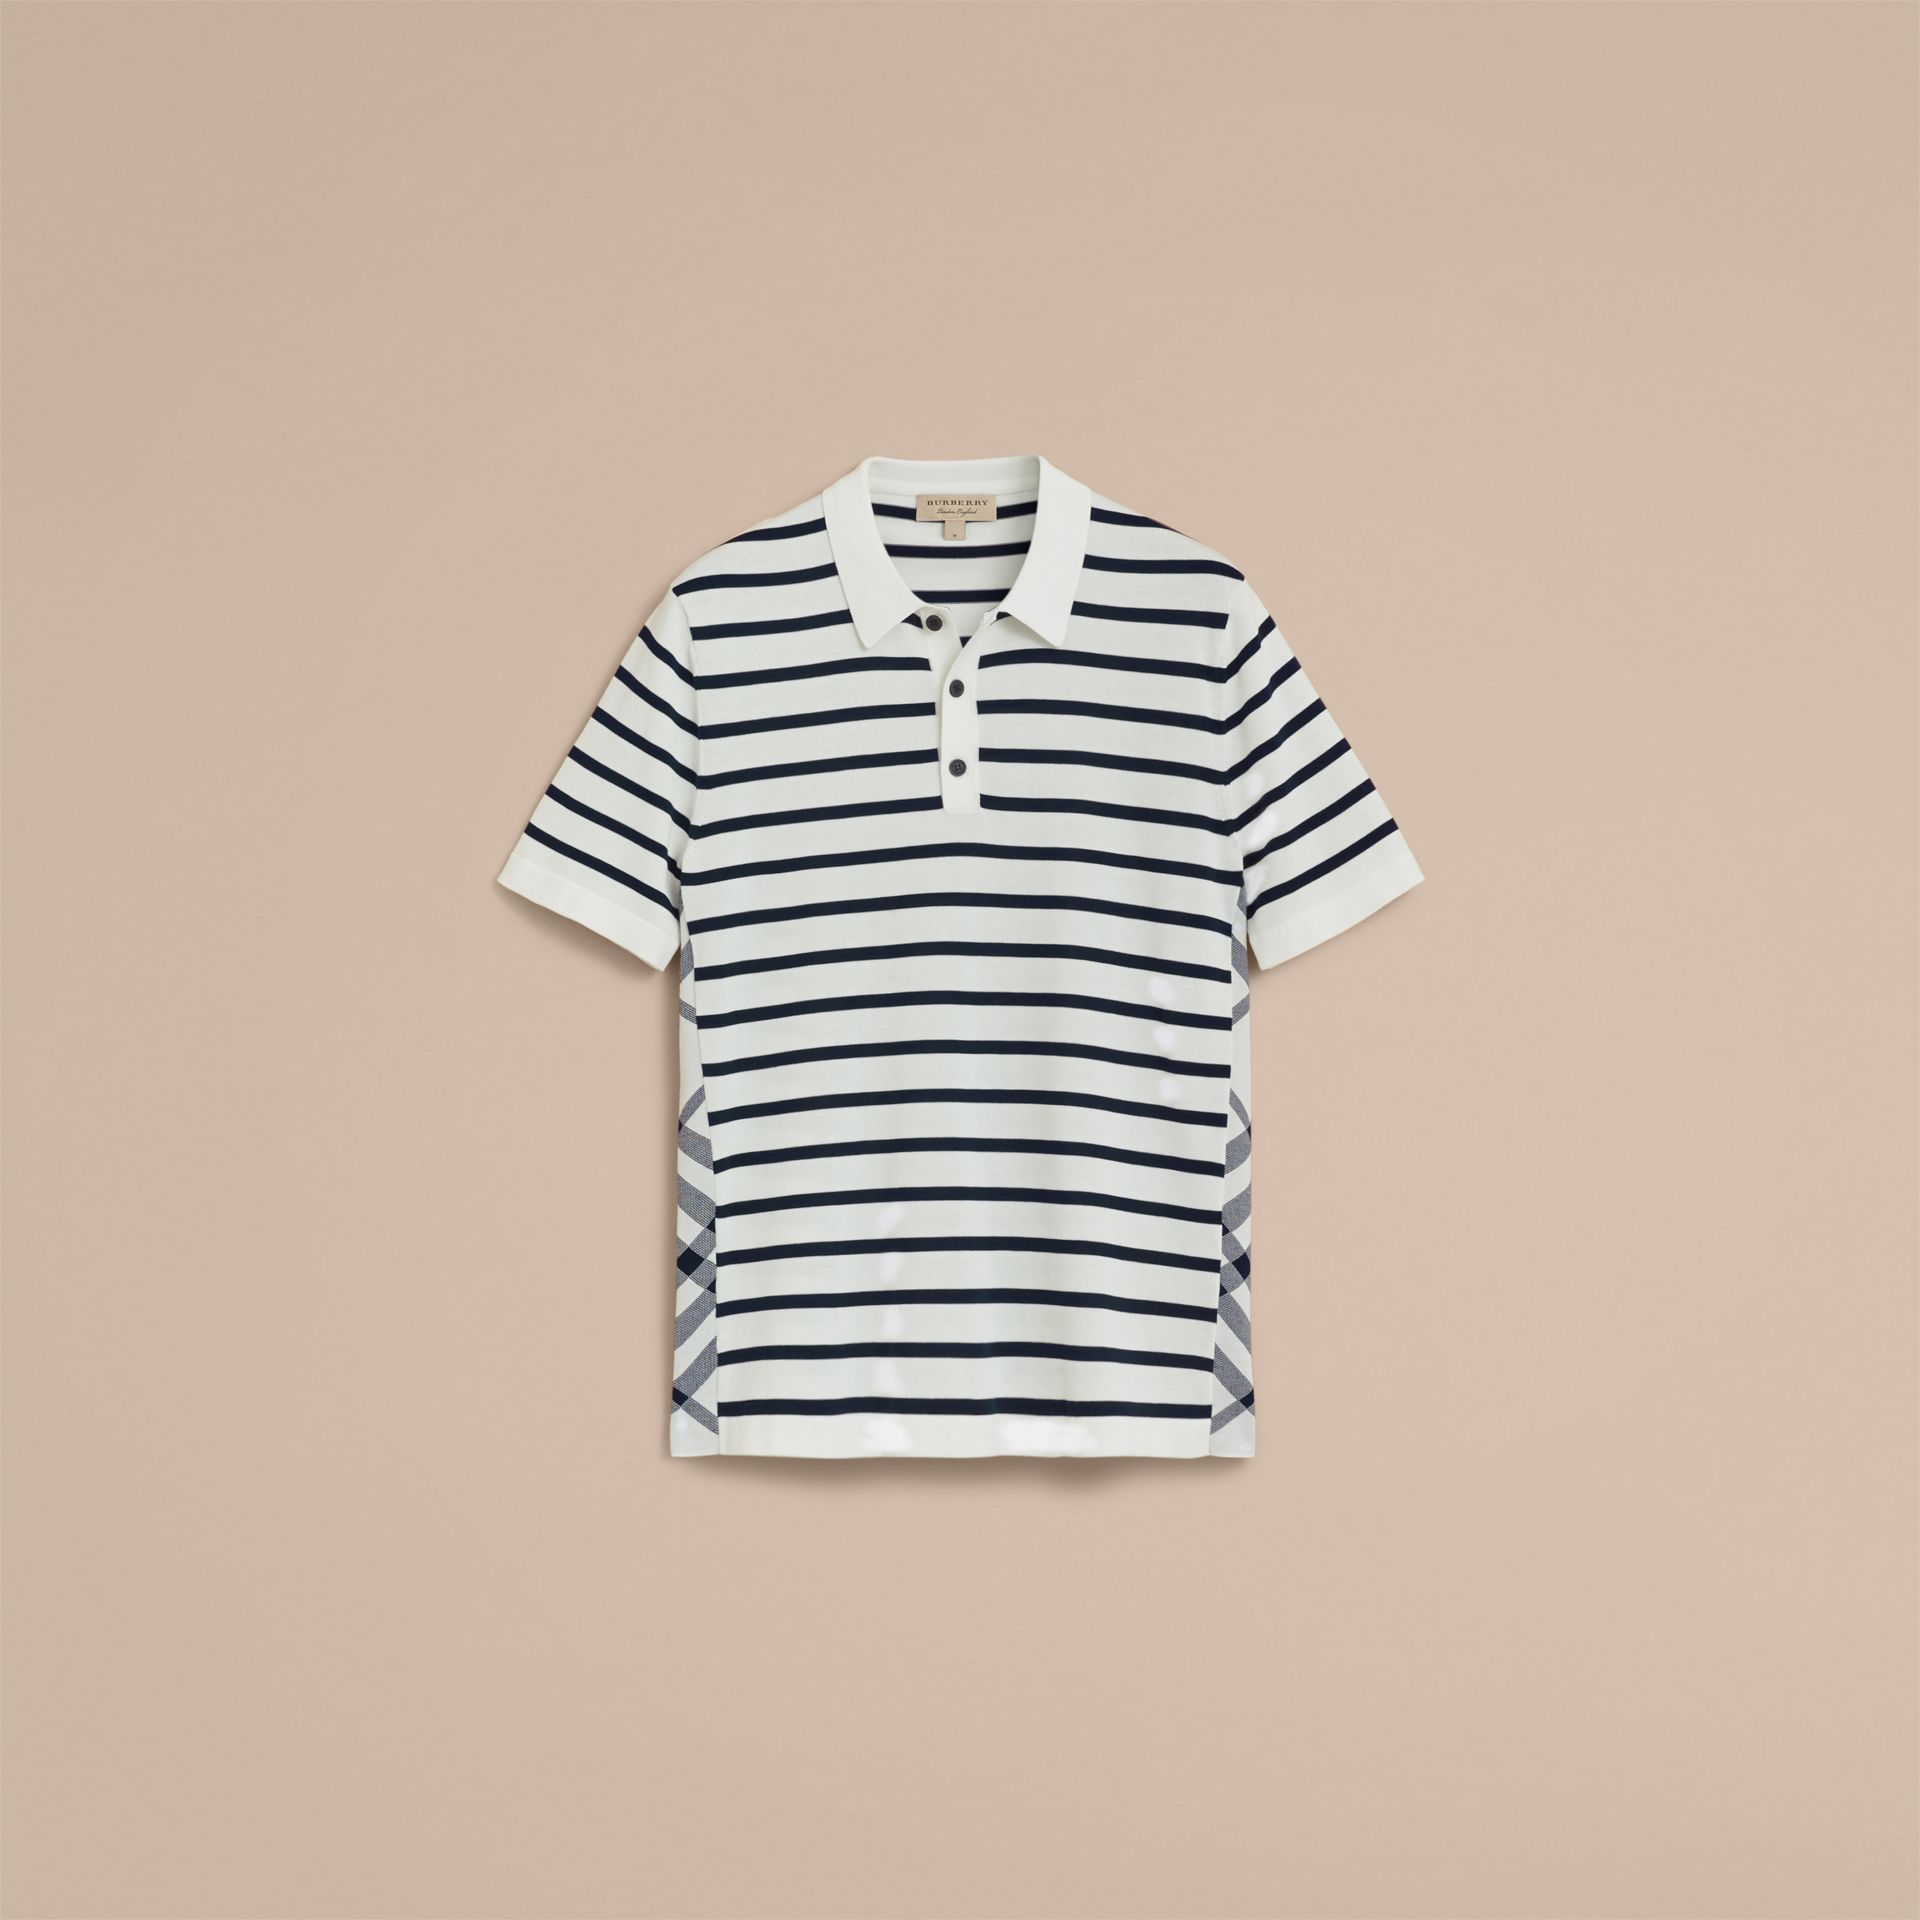 Breton Stripe Cotton Polo Shirt in White - Men | Burberry Hong Kong - gallery image 4